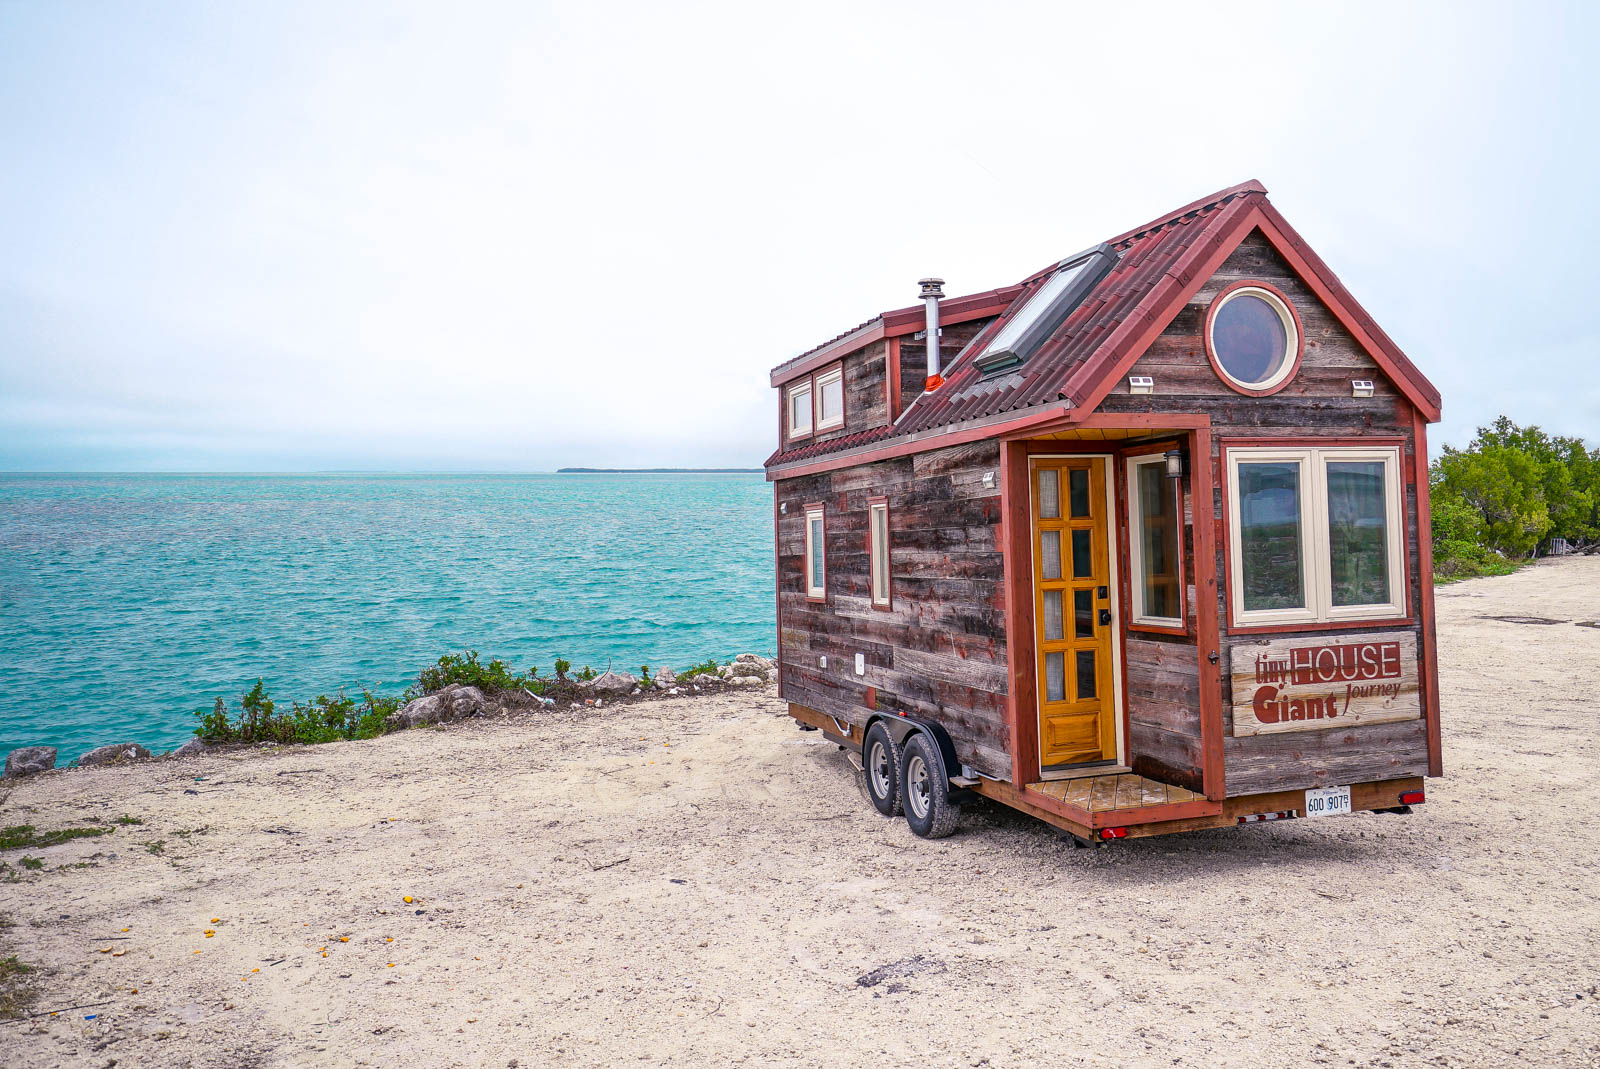 Tiny houses on the beach in florida - Tiny House In The Florida Keys 0003